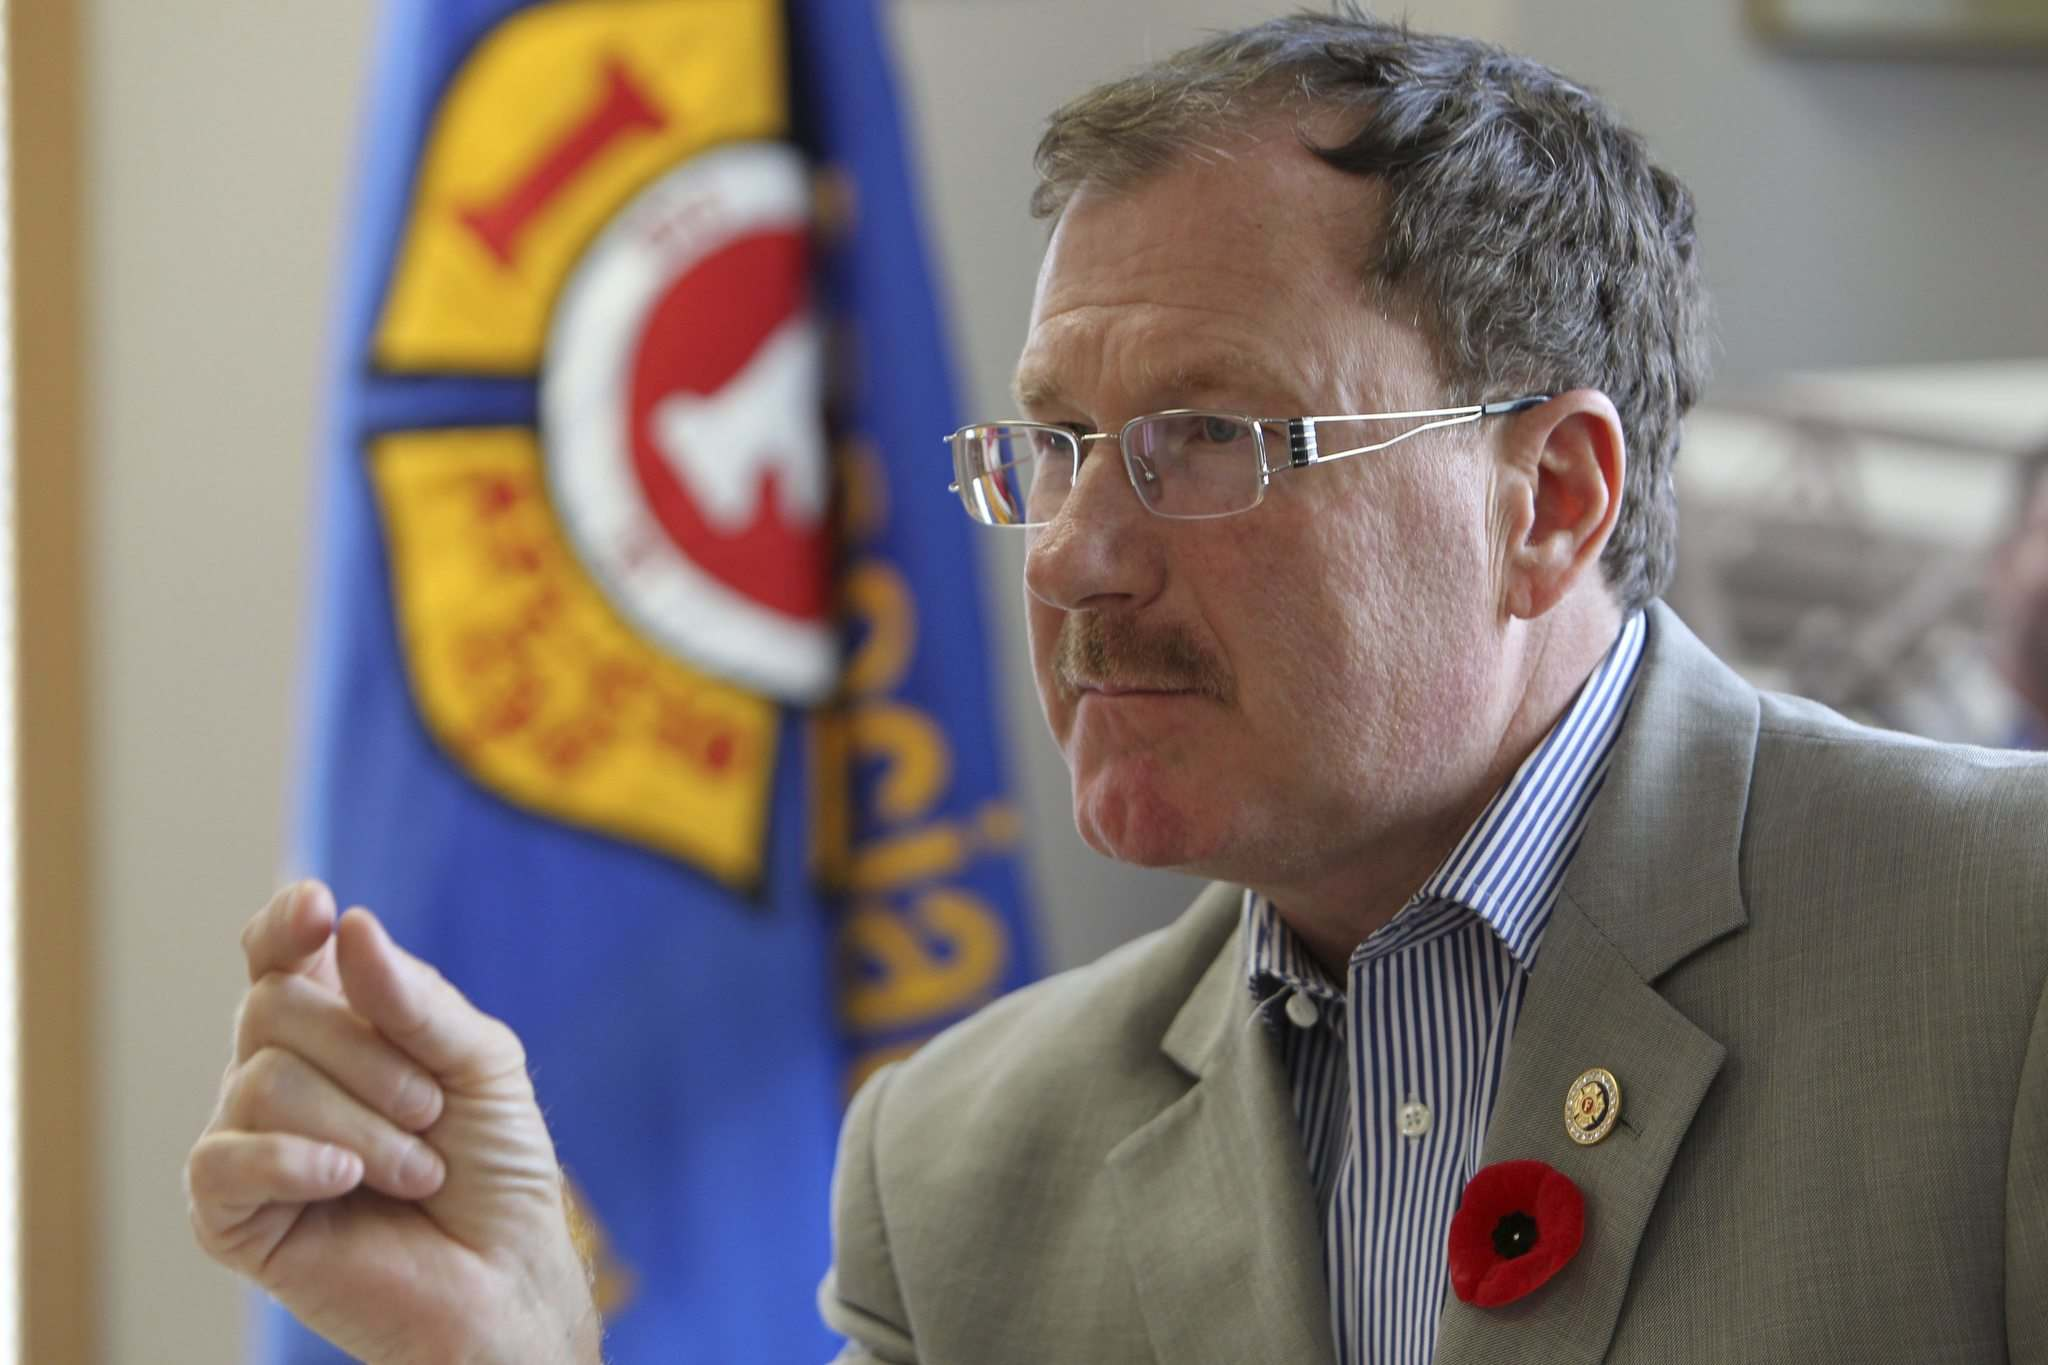 <p>Alex Forrest, president of United Fire Fighters of Winnipeg, said in a 2014 interview with the Free Press that he believed Havixbeck&#39;s accusations were politically motivated and prompted by his union&#39;s decision to endorse another candidate for mayor.